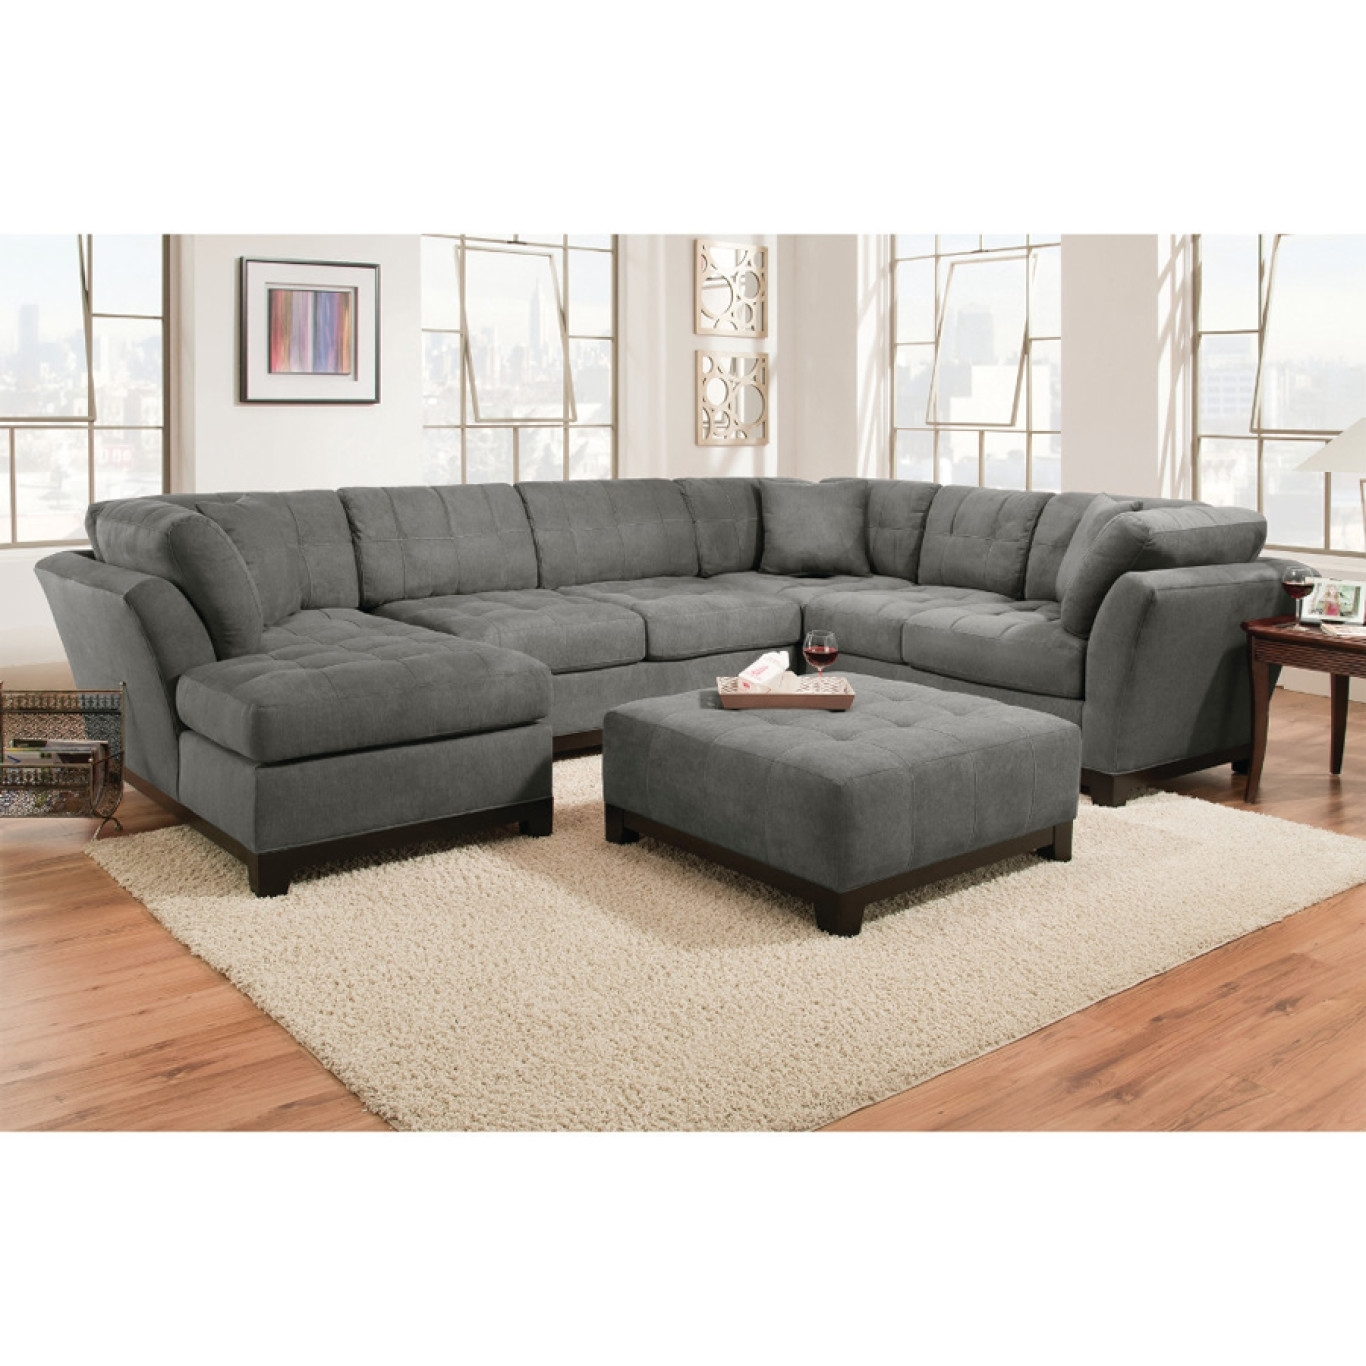 Bassett Furniture Greensboro Nc With Sectional Sofas In Greensboro Nc (View 4 of 10)